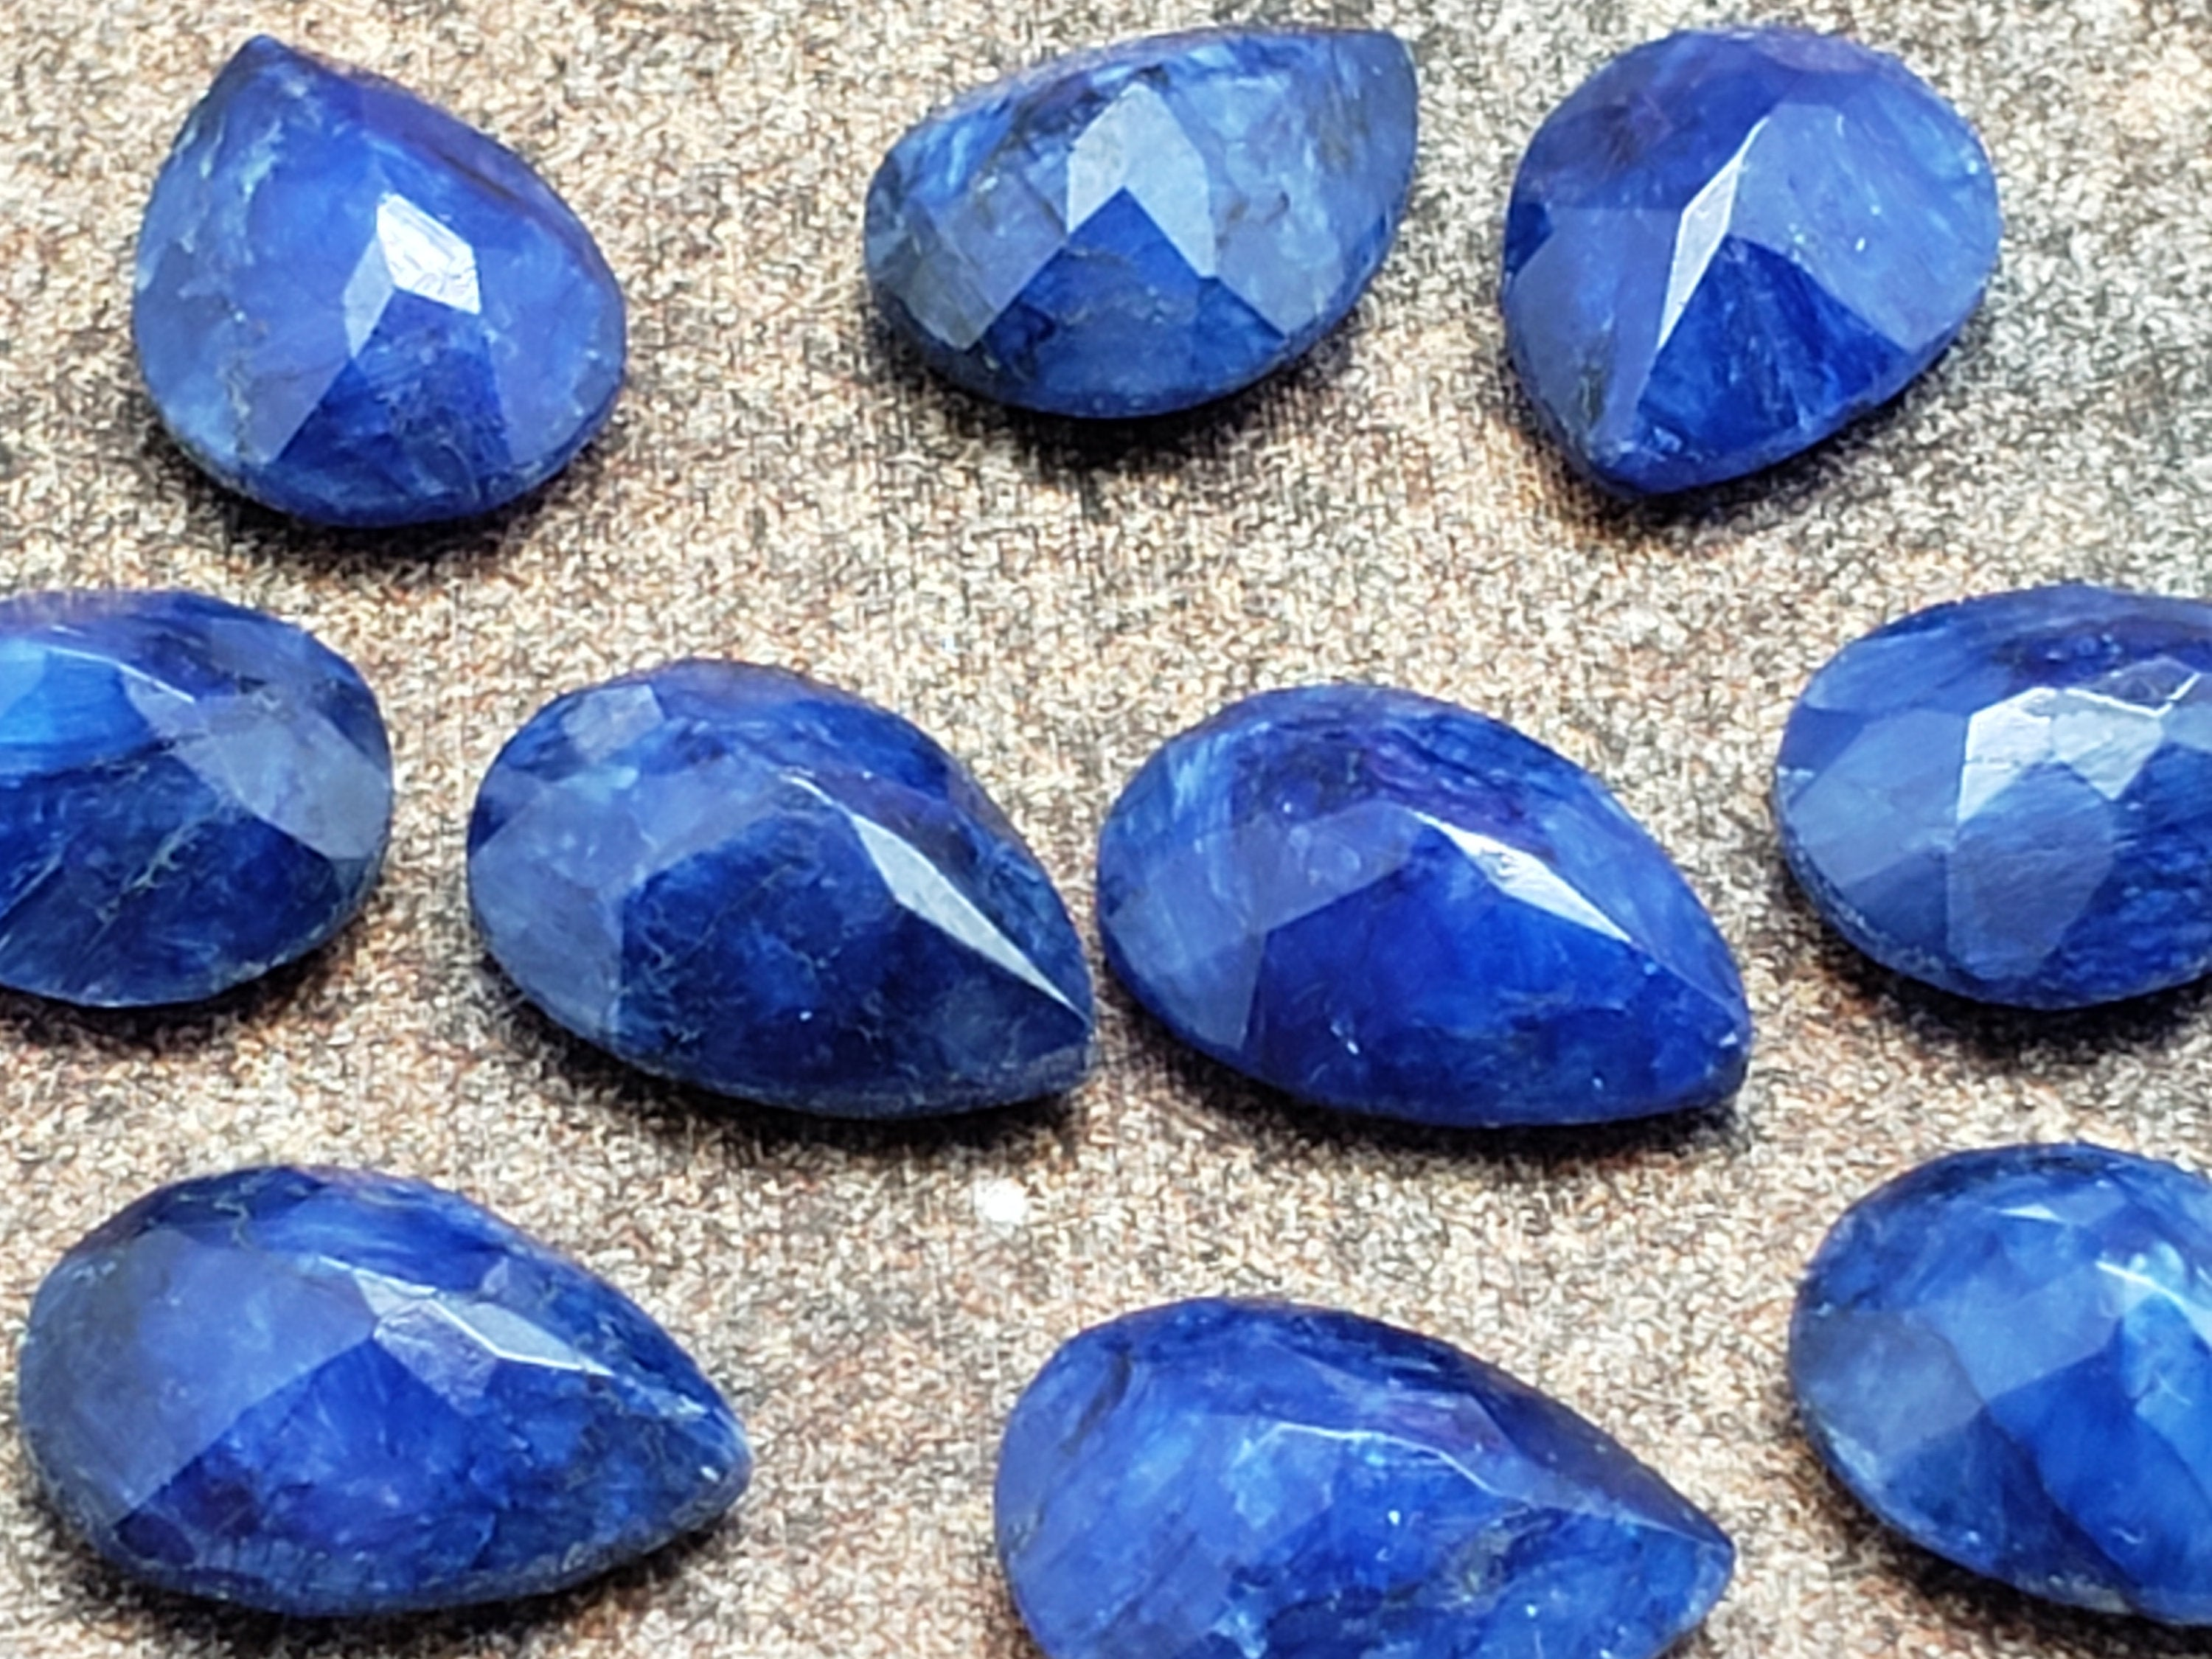 10mm by 14mm Sapphire Faceted Pear / Teardrop Loose Stone